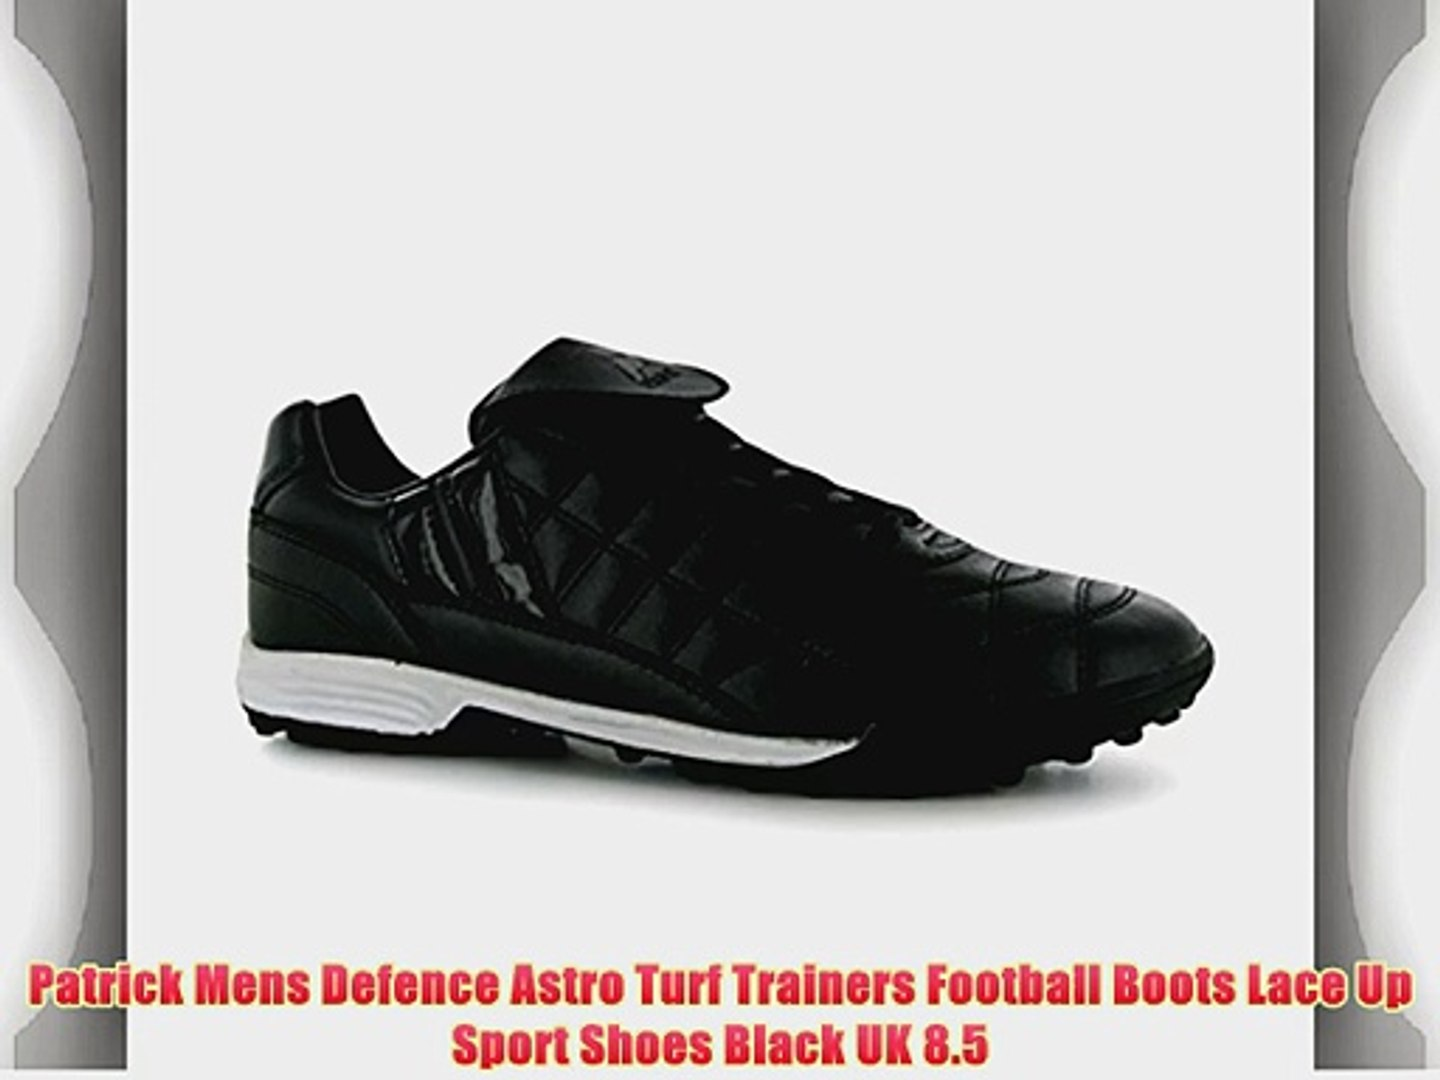 2eefdf8ff9c Patrick Mens Defence Astro Turf Trainers Football Boots Lace Up Sport Shoes  Black UK 8.5